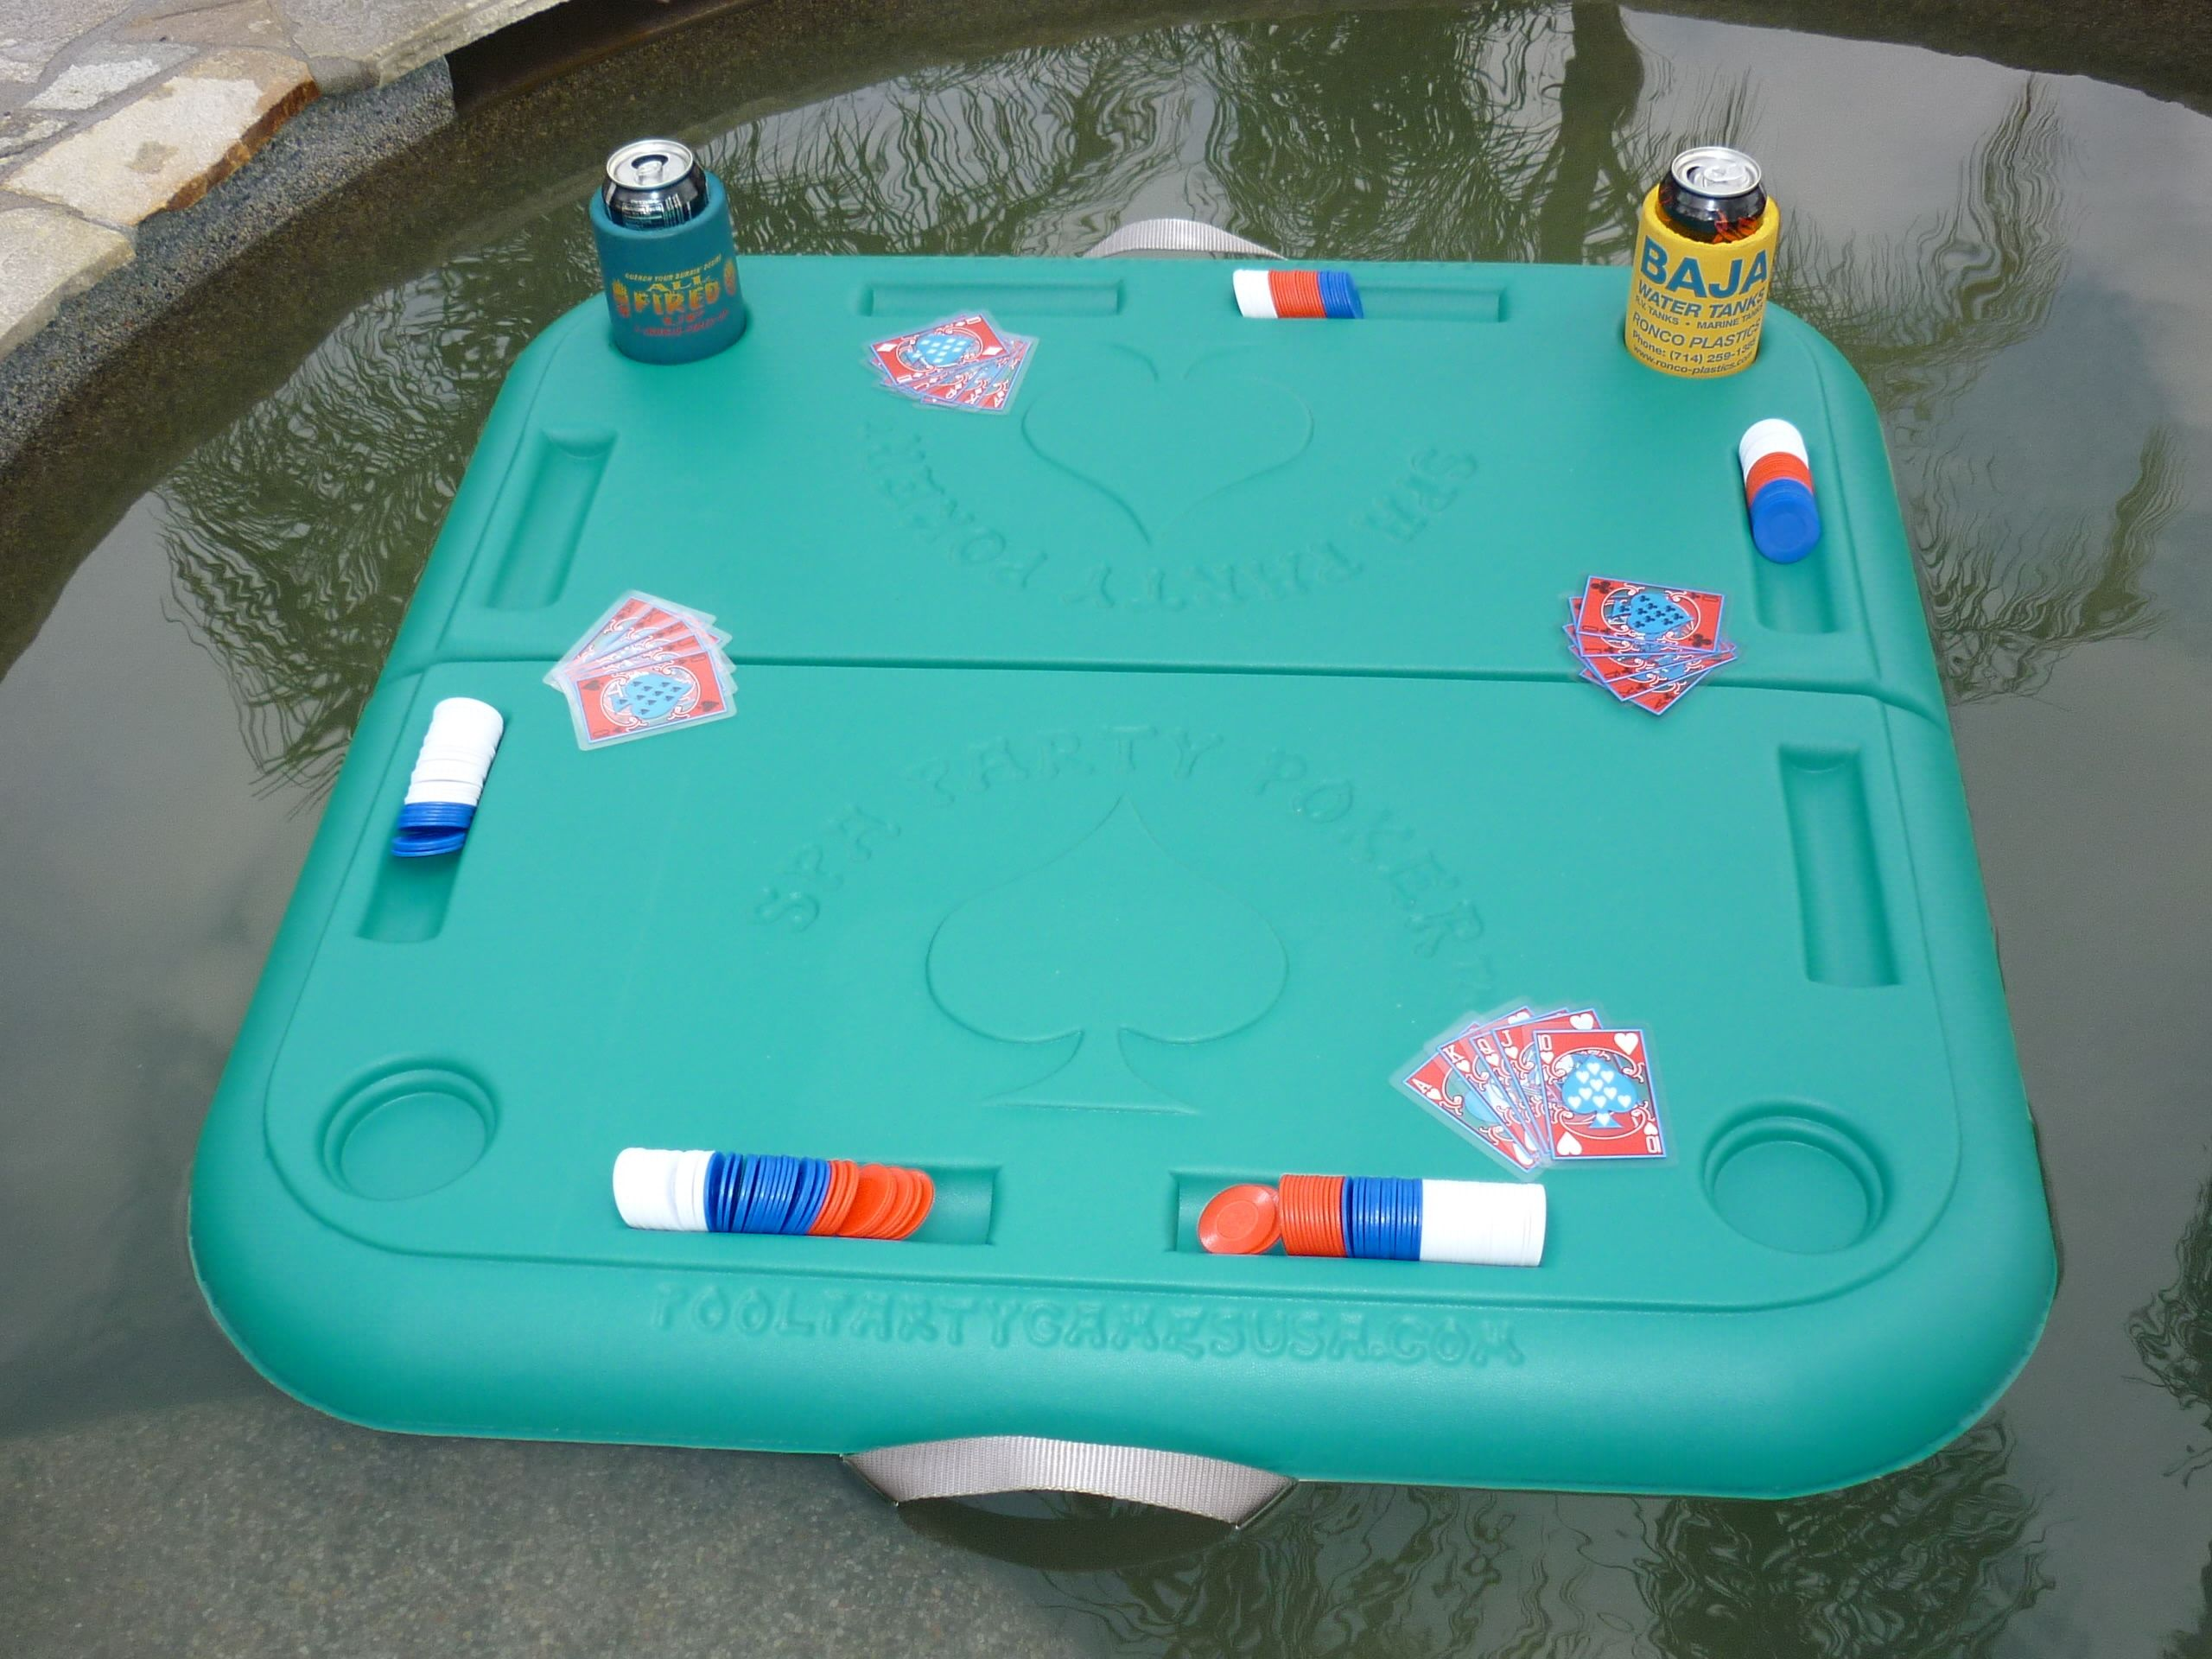 Floating Poker Table In 2019 Poker Table Summer Fun Poker